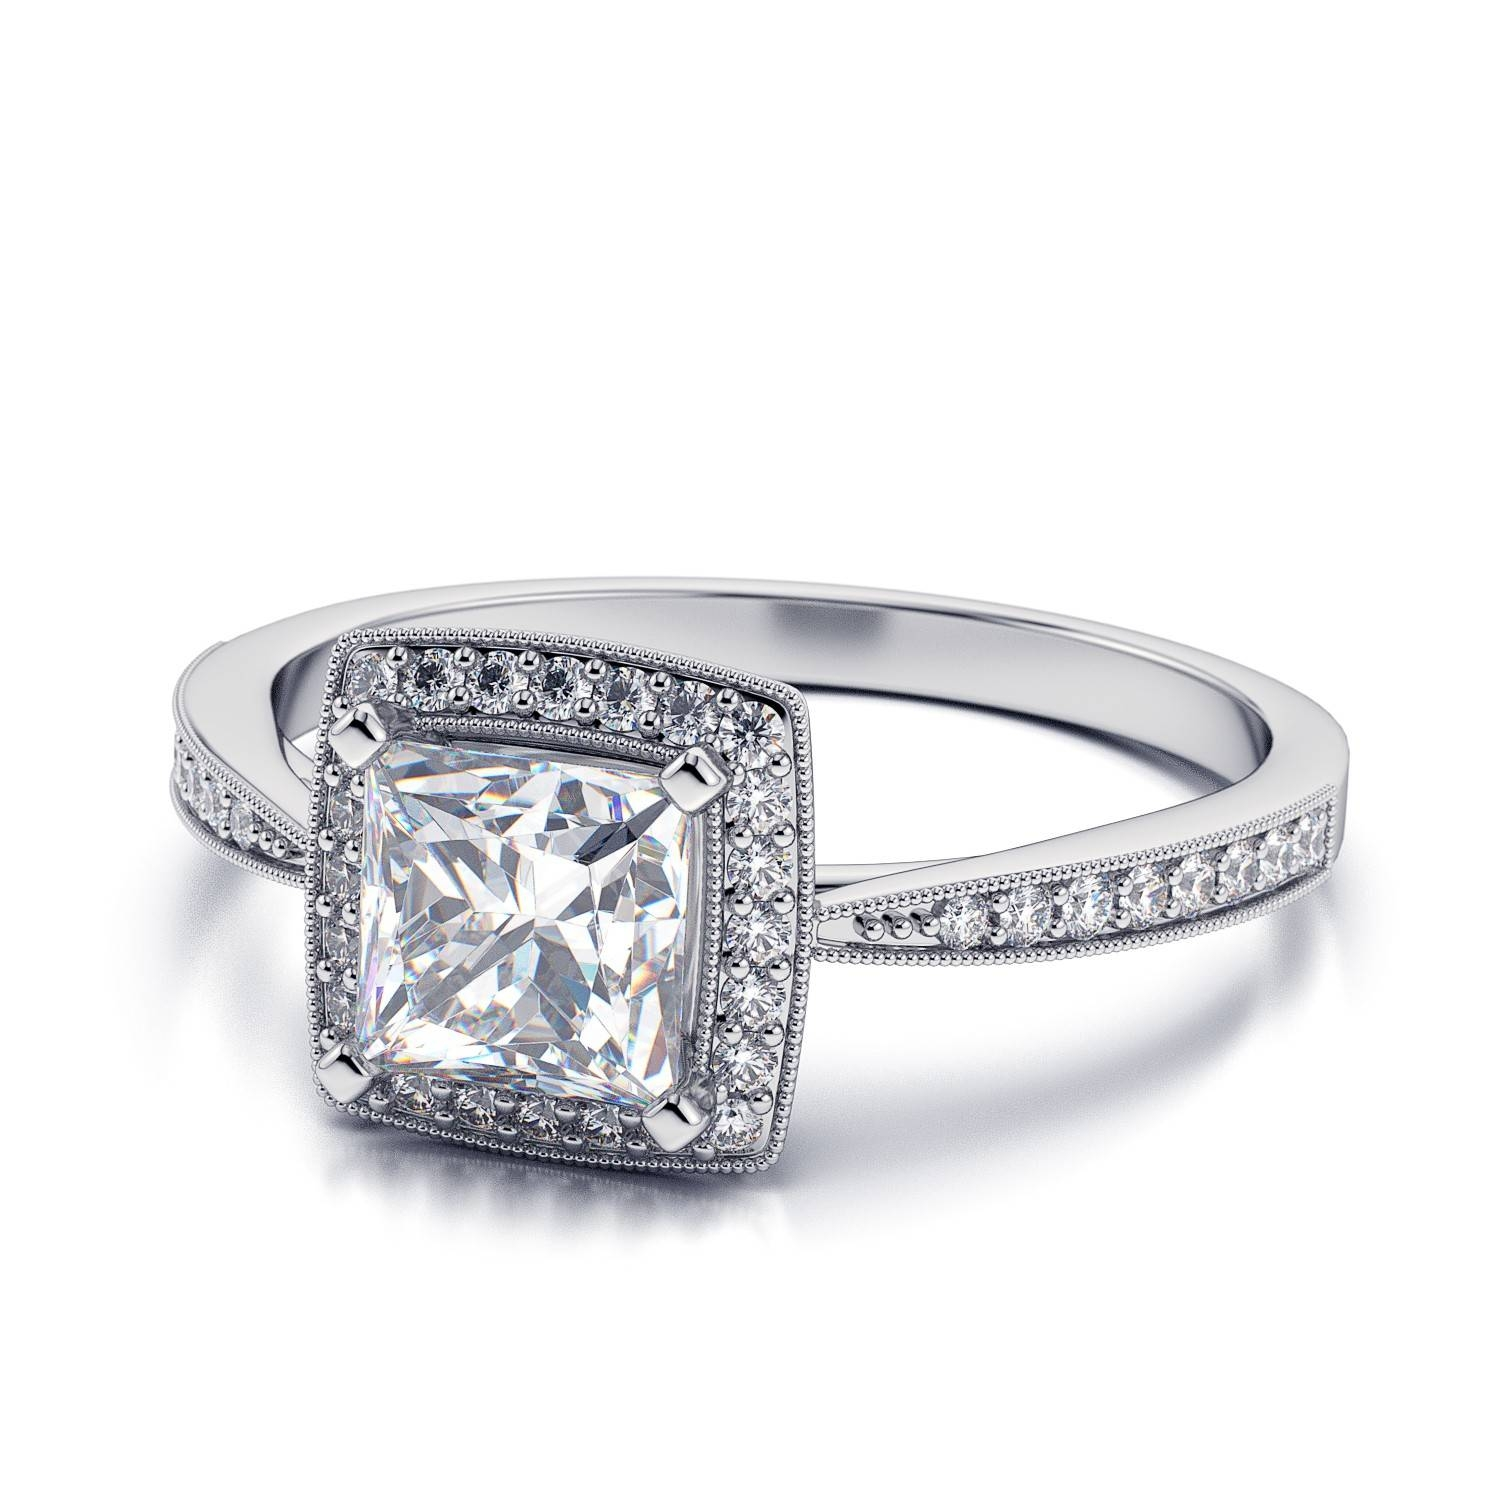 Vintage Cut Engagement Rings | Wedding, Promise, Diamond Regarding Vintage Halo Engagement Ring Settings (View 8 of 15)